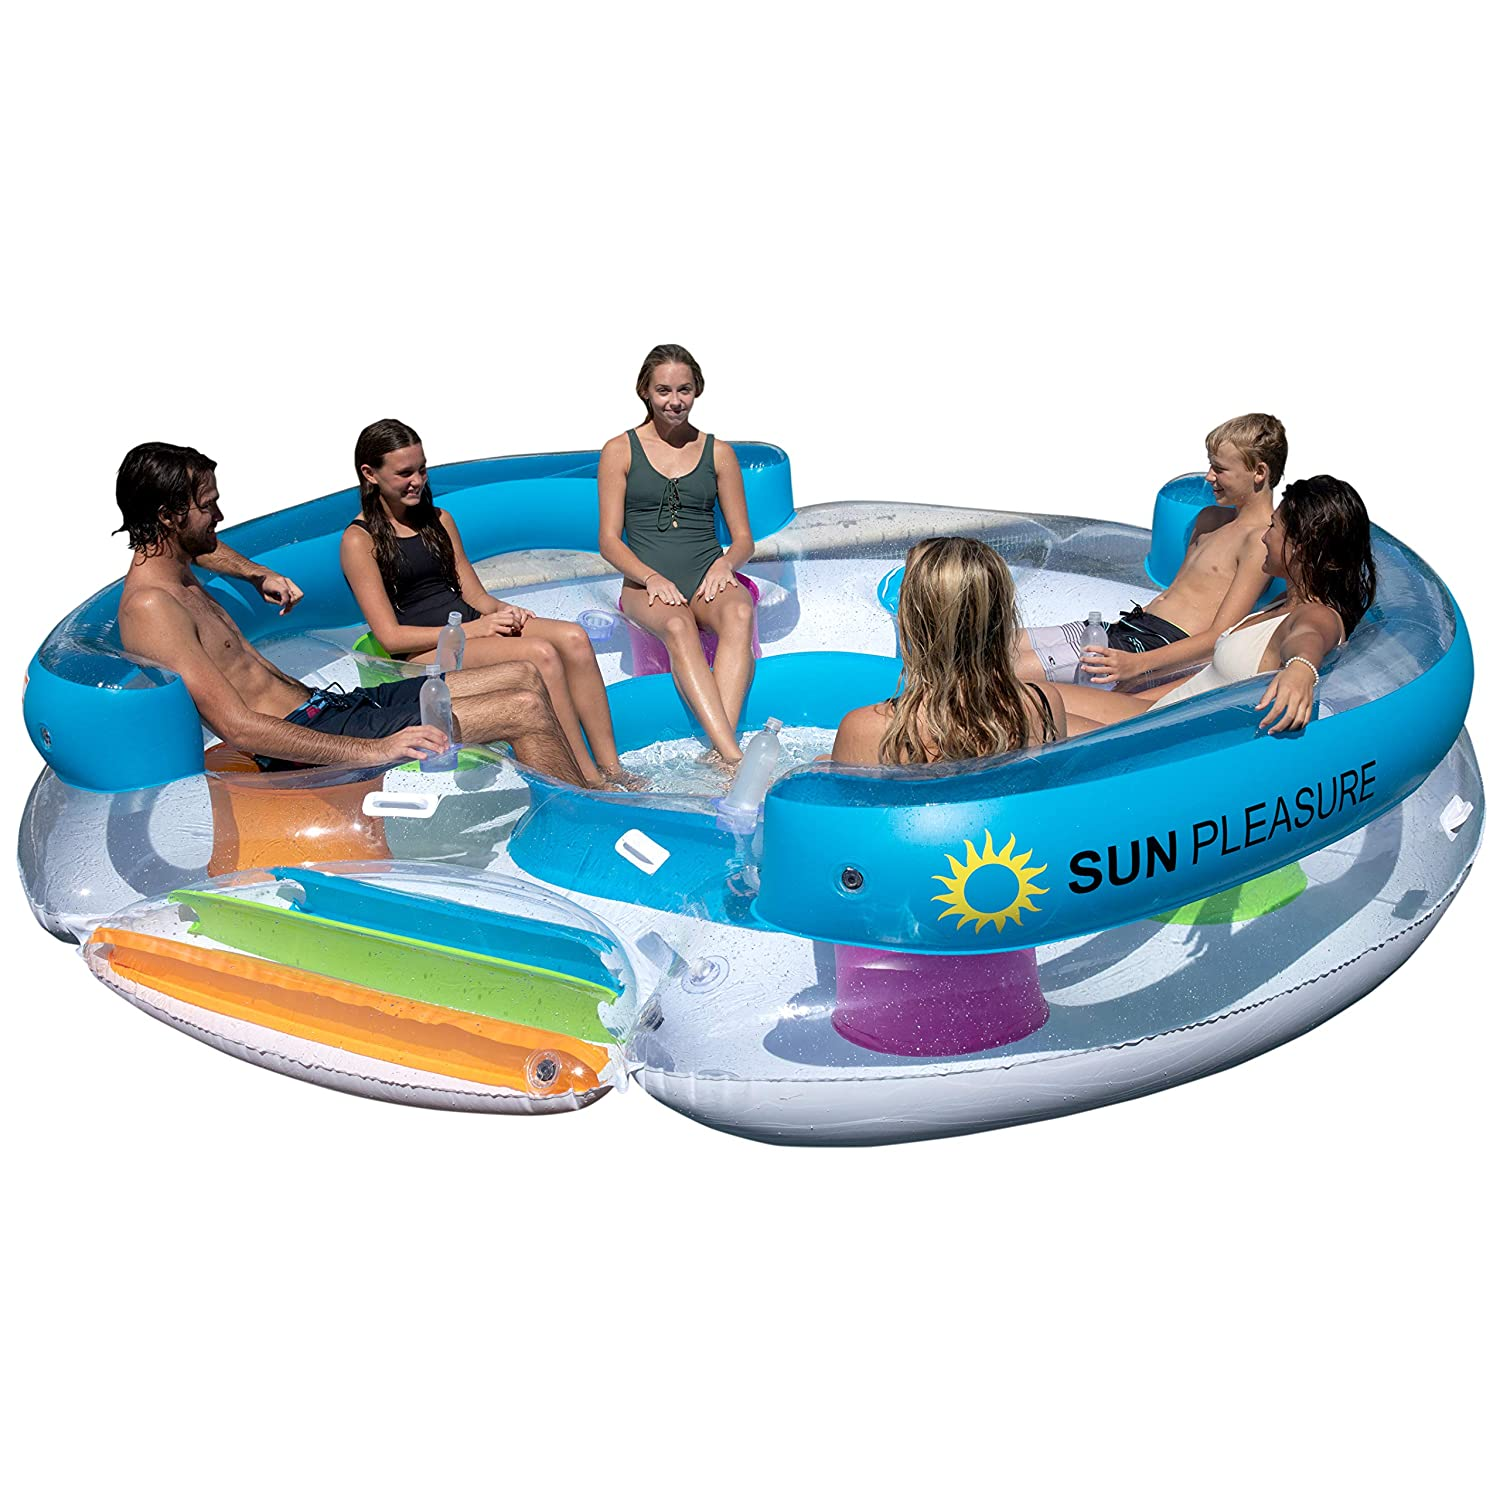 Sun Pleasure Tropical Tahiti Floating Island, Giant Float and Carrying Bag -...